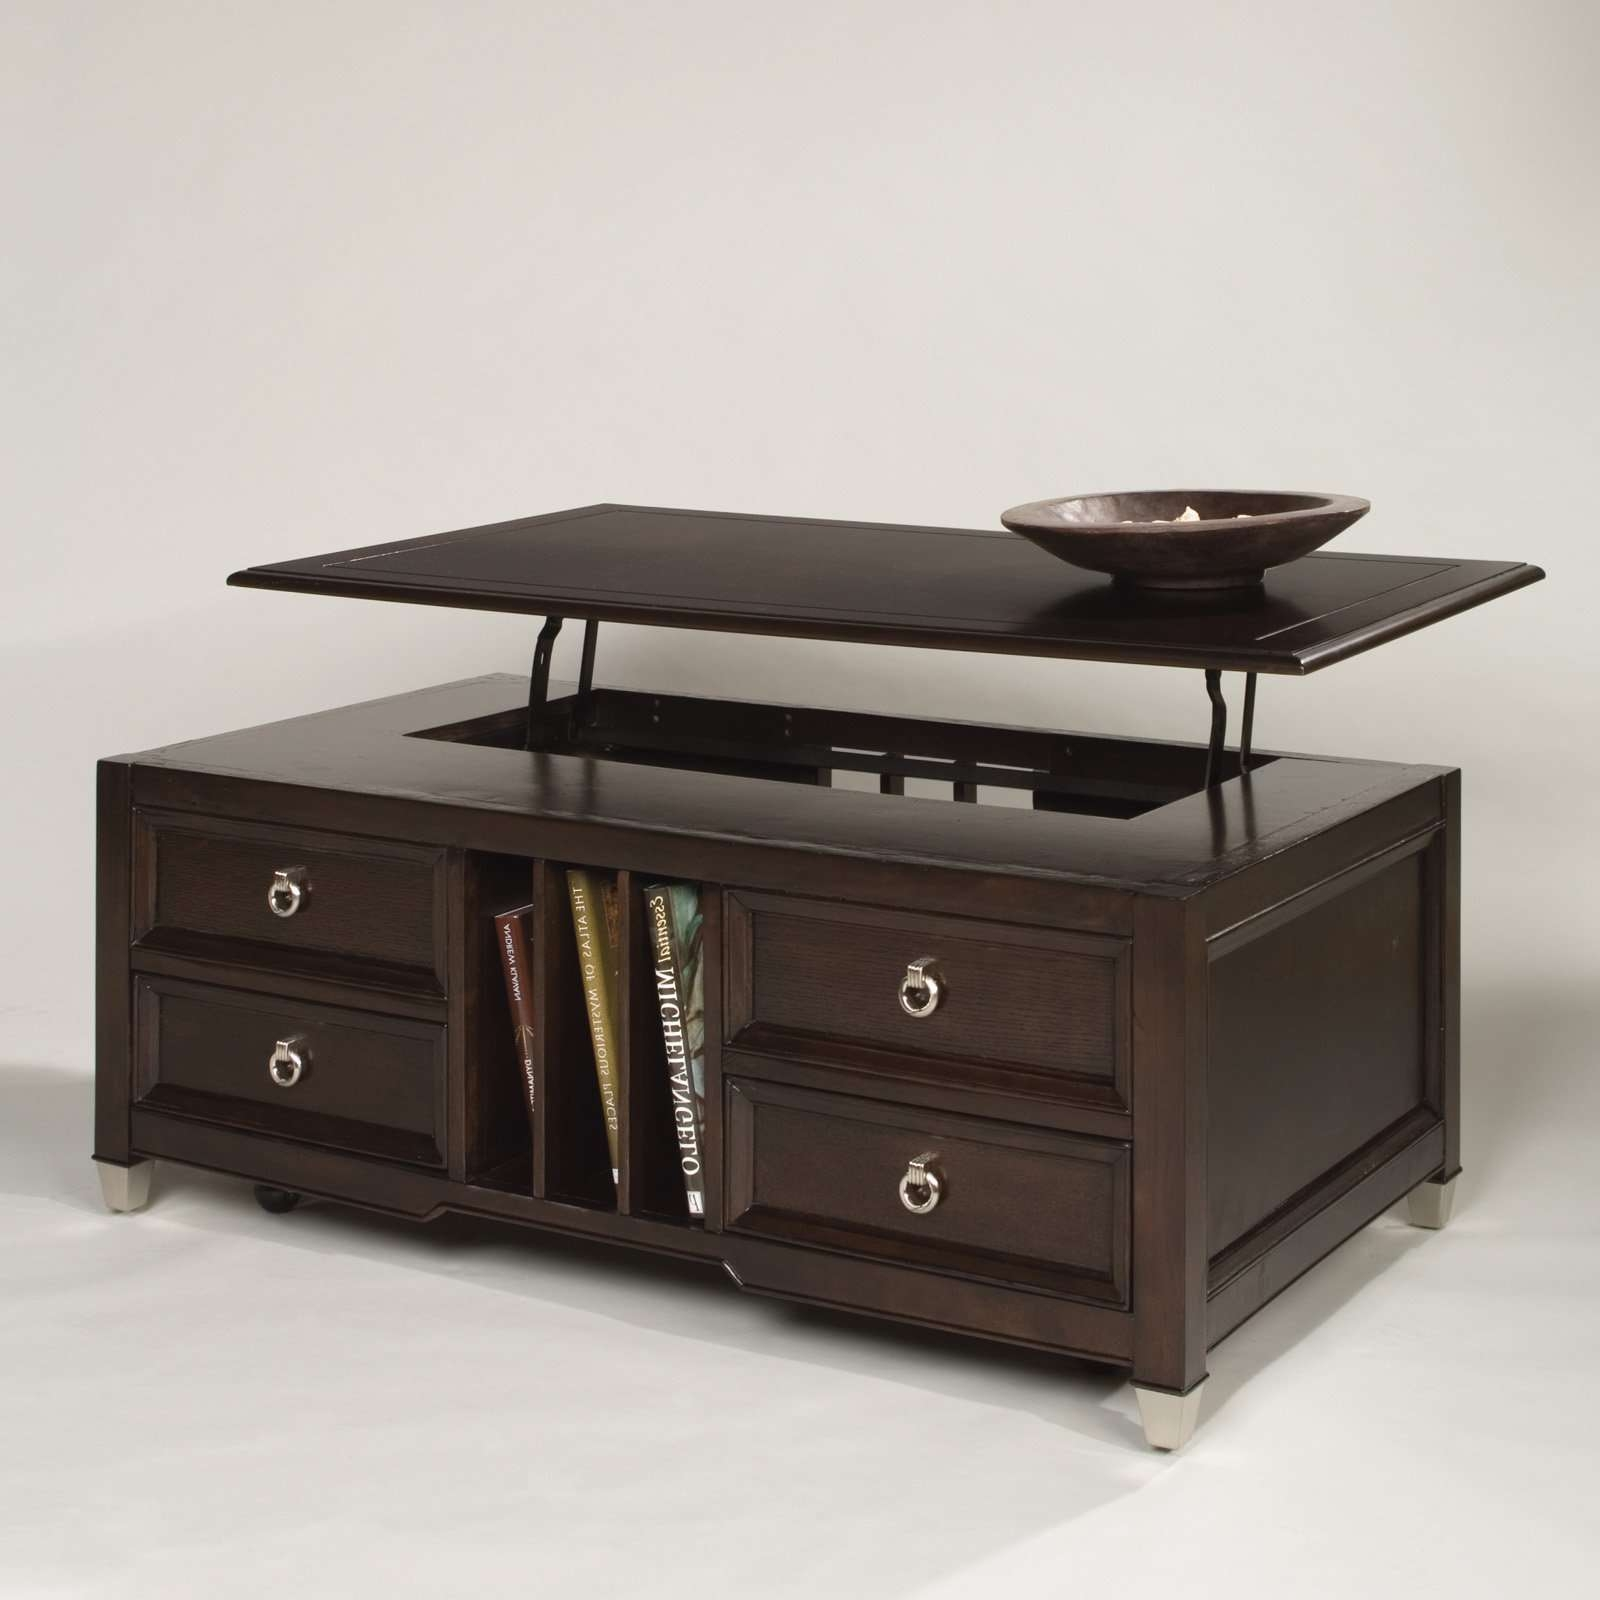 Magnussen T1124 Darien Wood Lift Top Coffee Table (View 20 of 20)